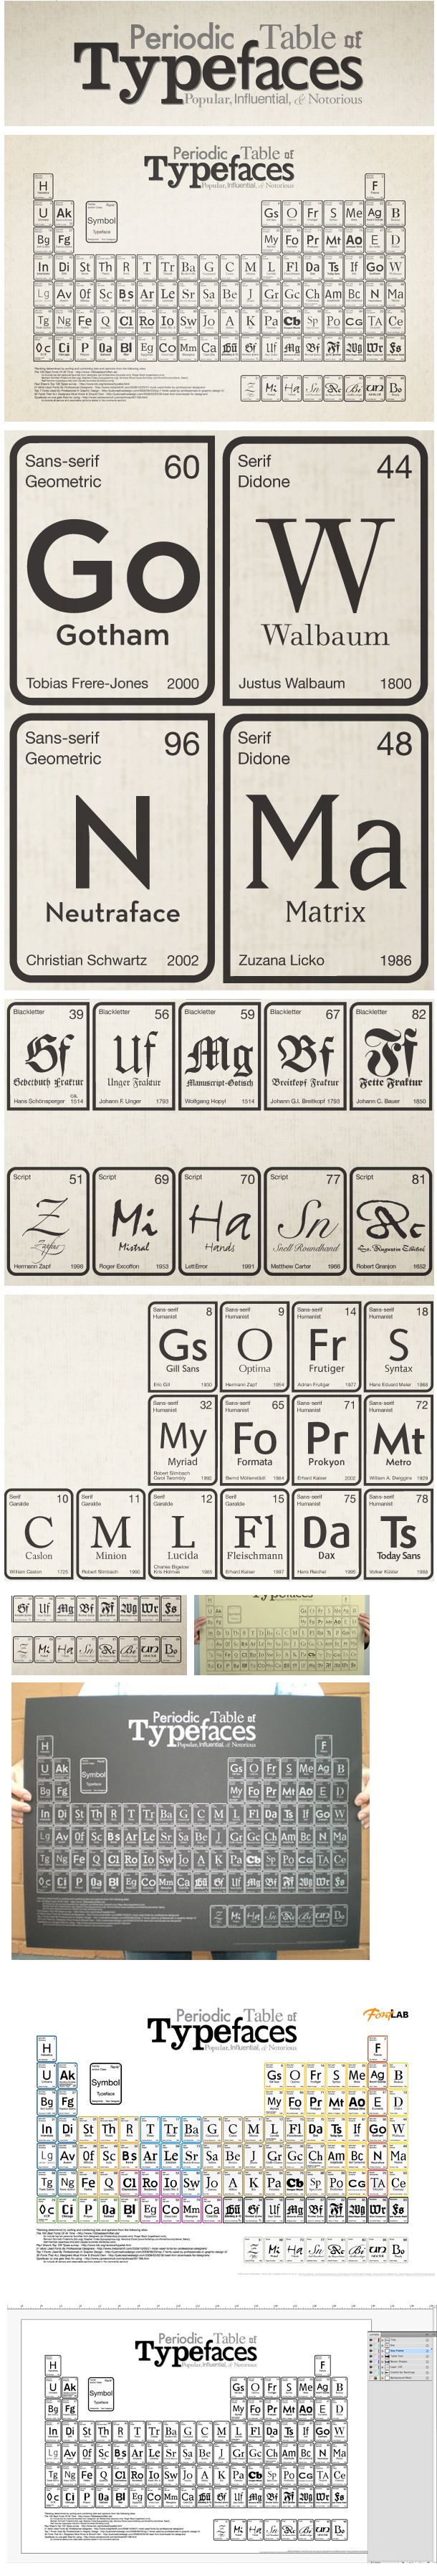 98 best periodic table of elements images on pinterest character periodic table of typeface by publistagram gamestrikefo Choice Image